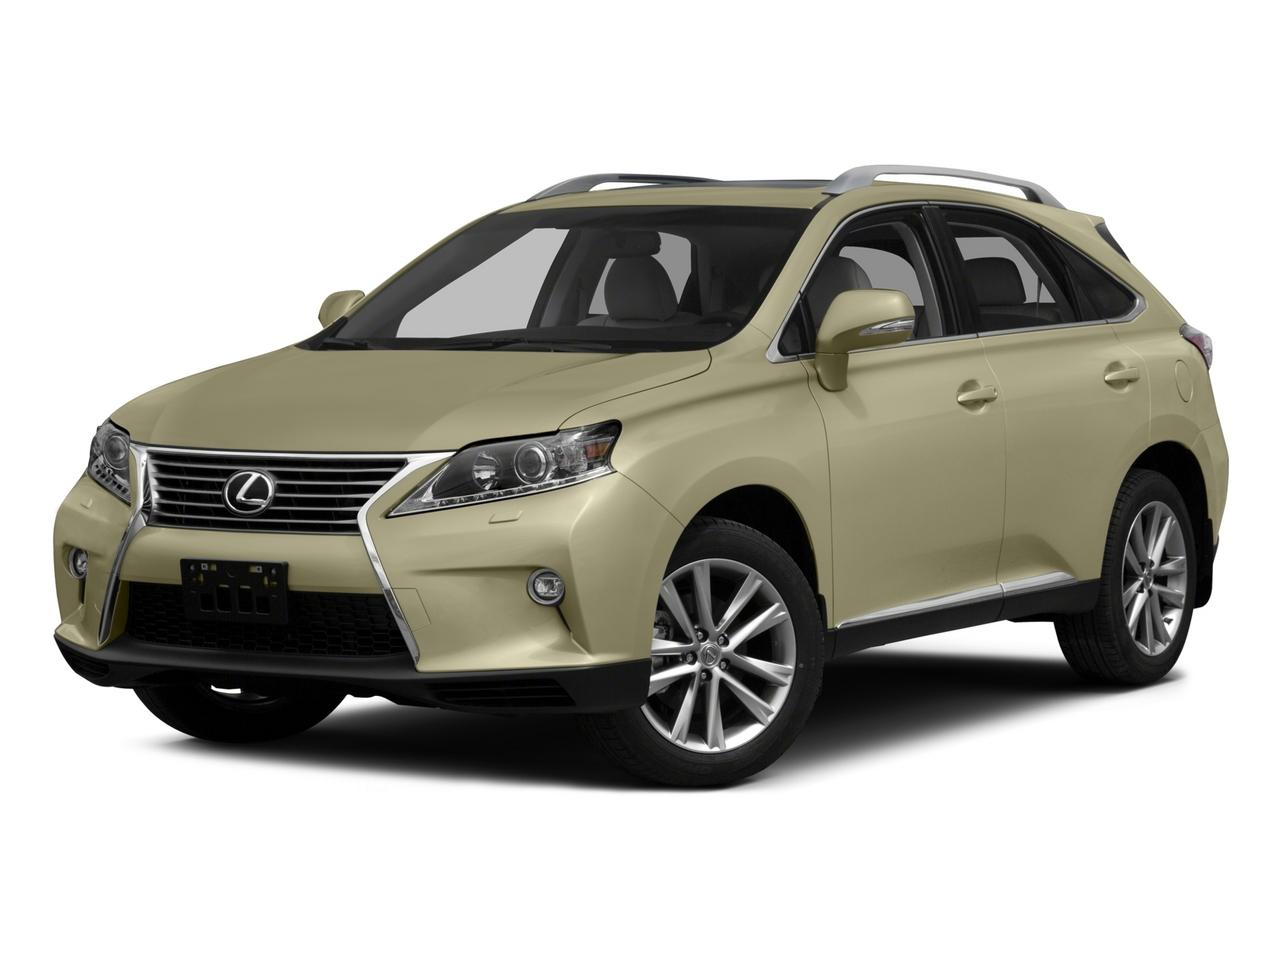 2015 Lexus RX 350 Vehicle Photo in San Antonio, TX 78230